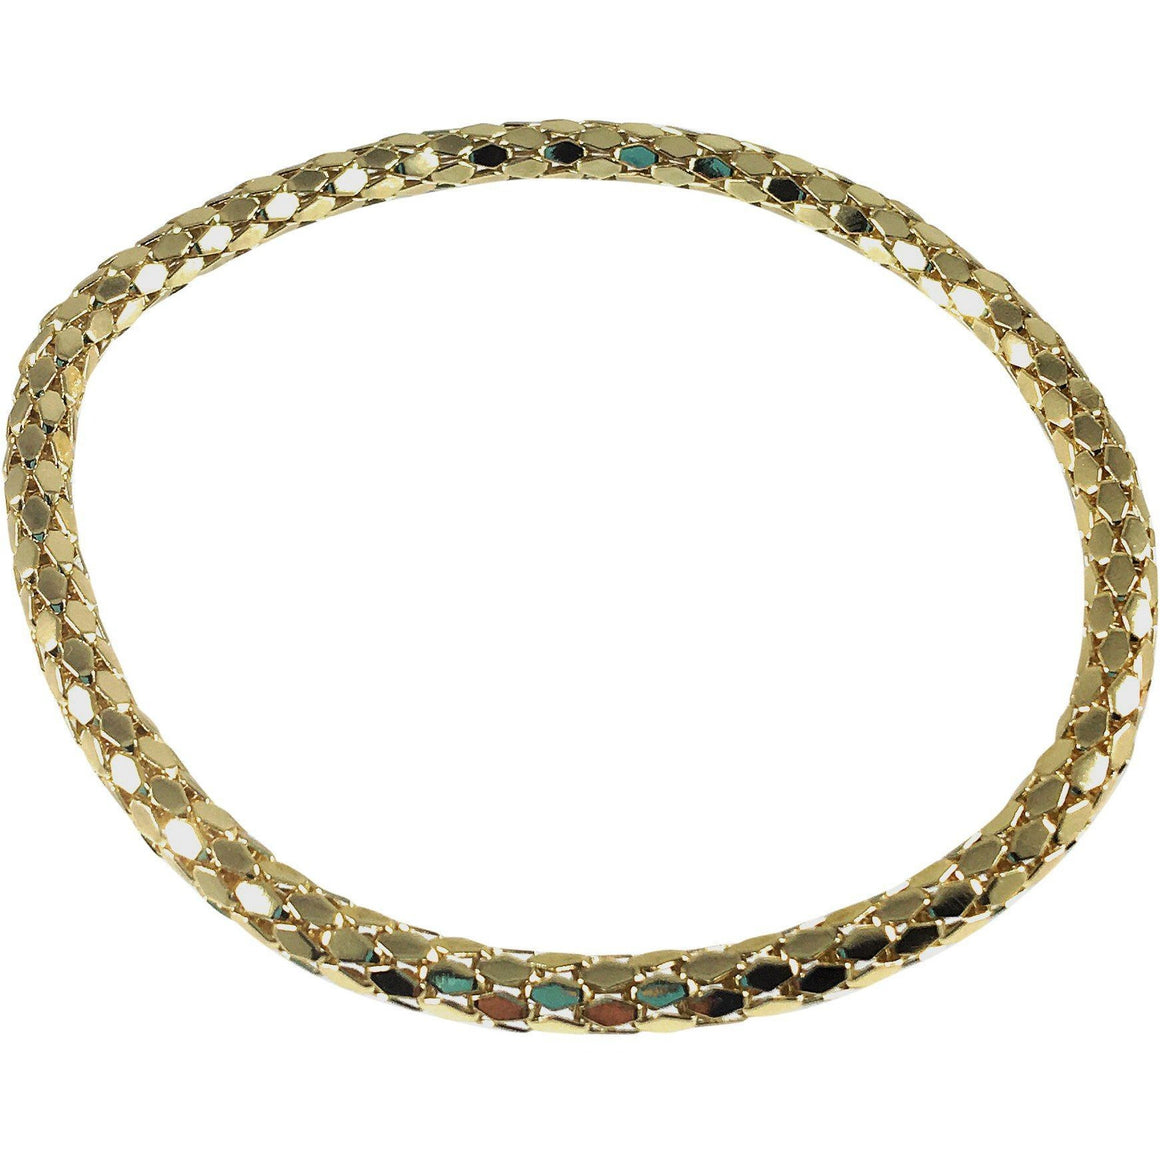 12K Gold Filled Mesh Chain Stretch Bracelet (Gold 4mm Hexagon Links) - Beads and Dangles